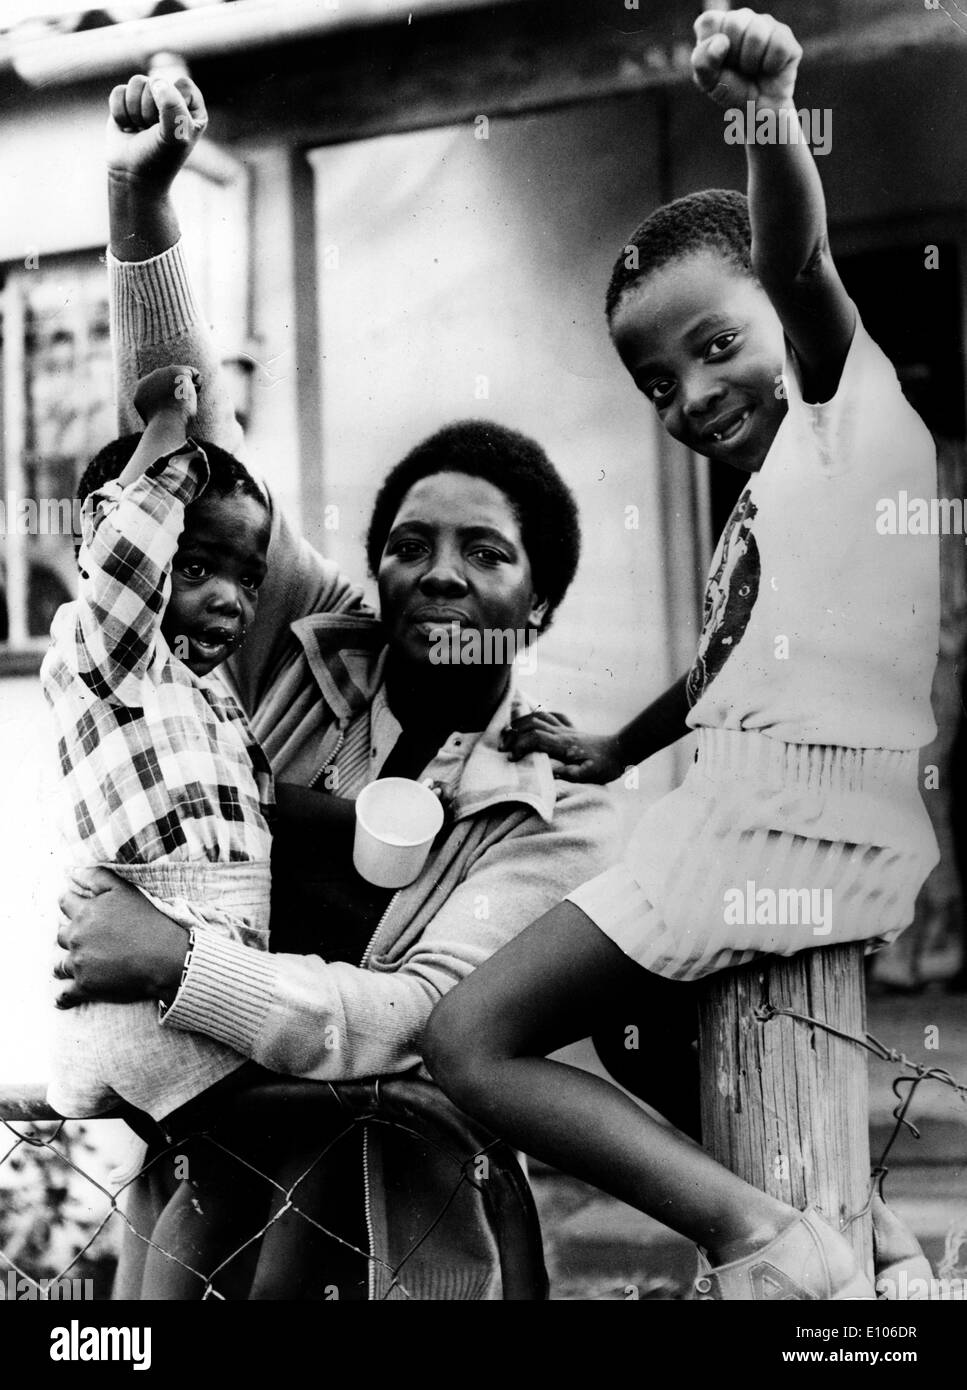 """Supporters of Stephen Bantu Biko(18 December 1946 €"""" 12 September 1977) was a noted anti-apartheid activist in South - Stock Image"""